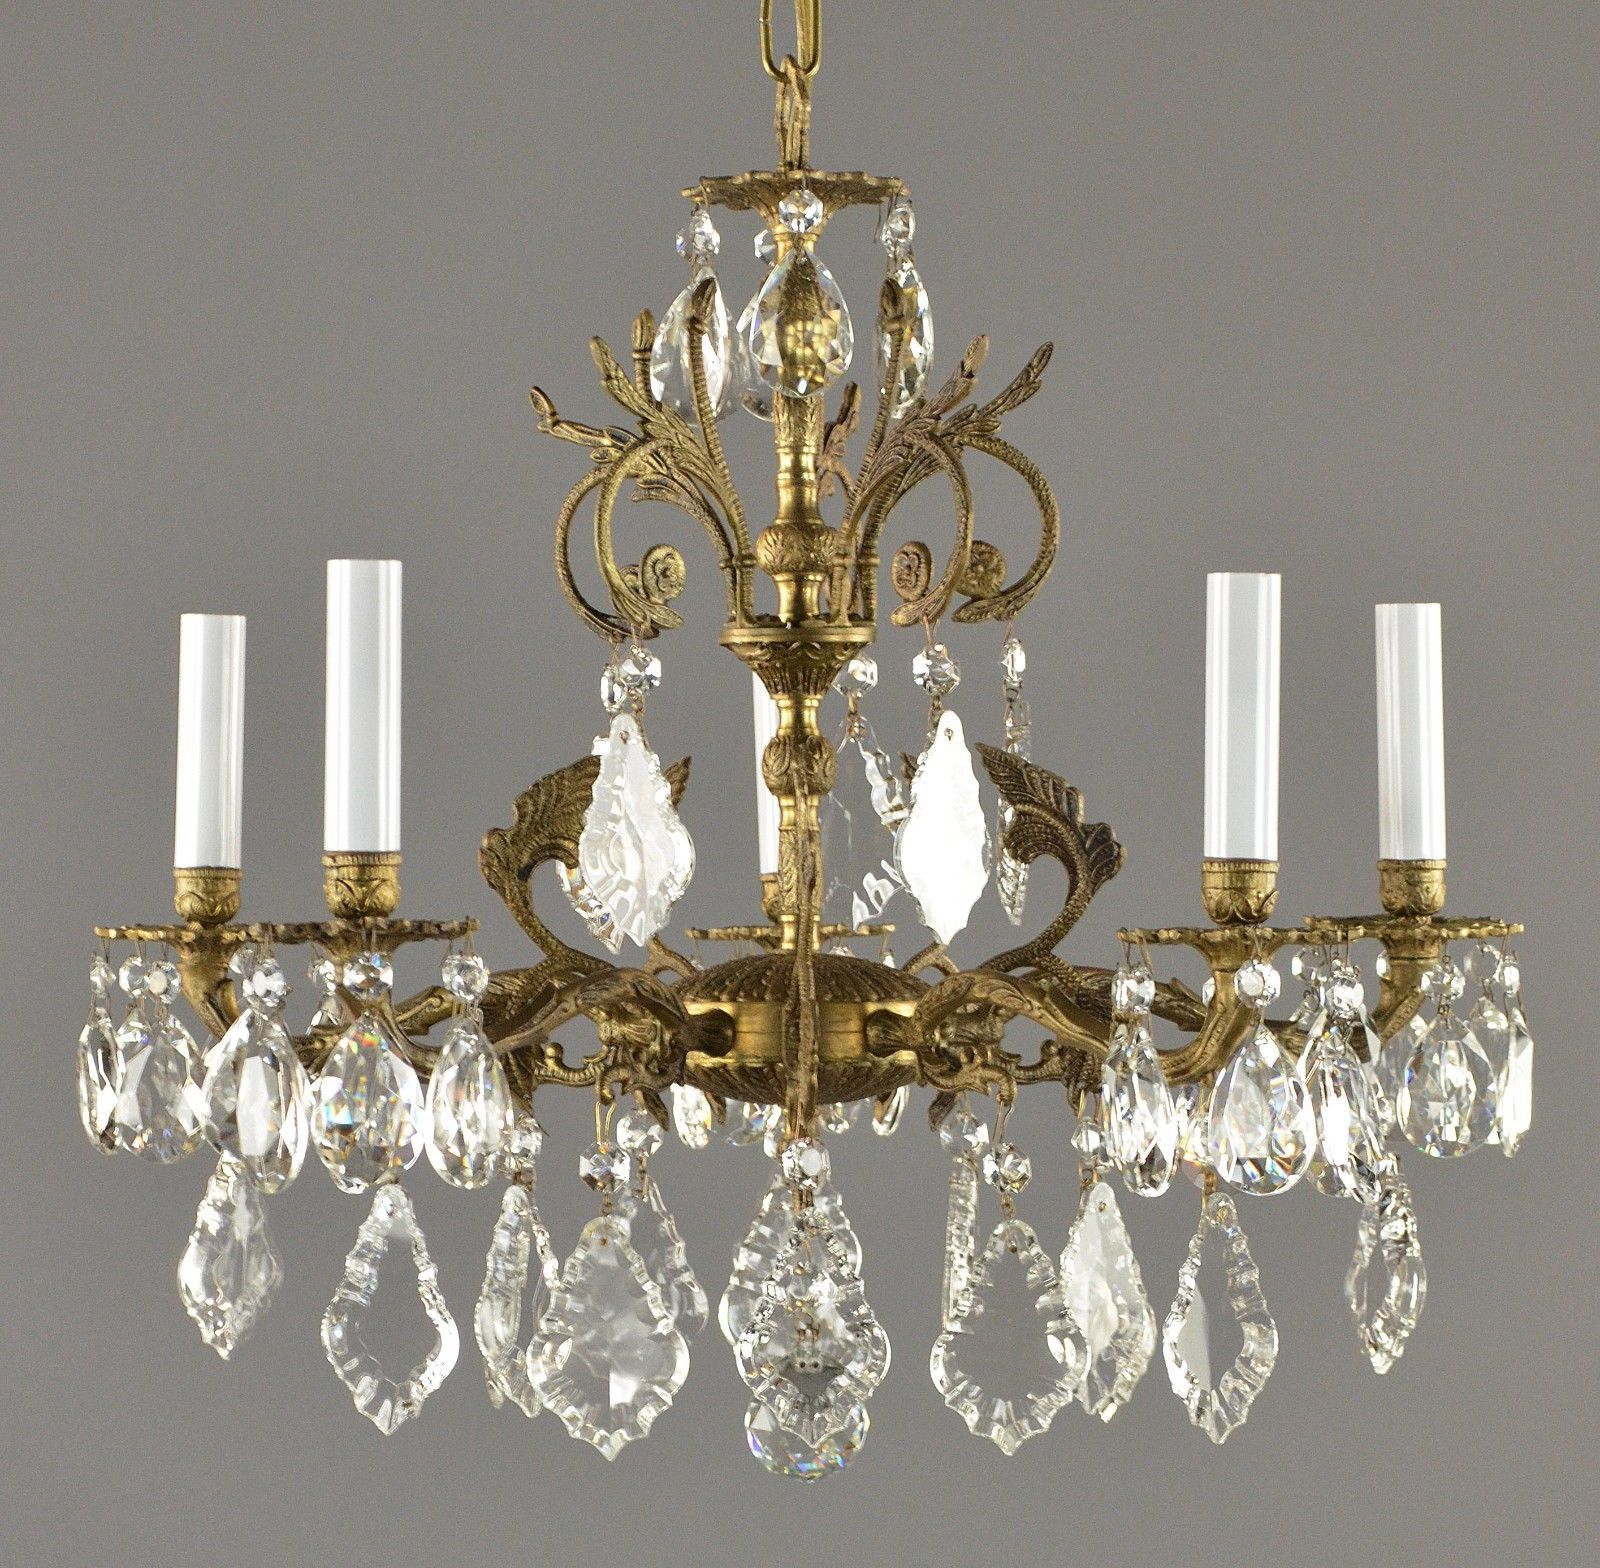 Spanish brass crystal chandelier c1950 antique gold vintage spanish brass crystal chandelier c1950 arubaitofo Image collections